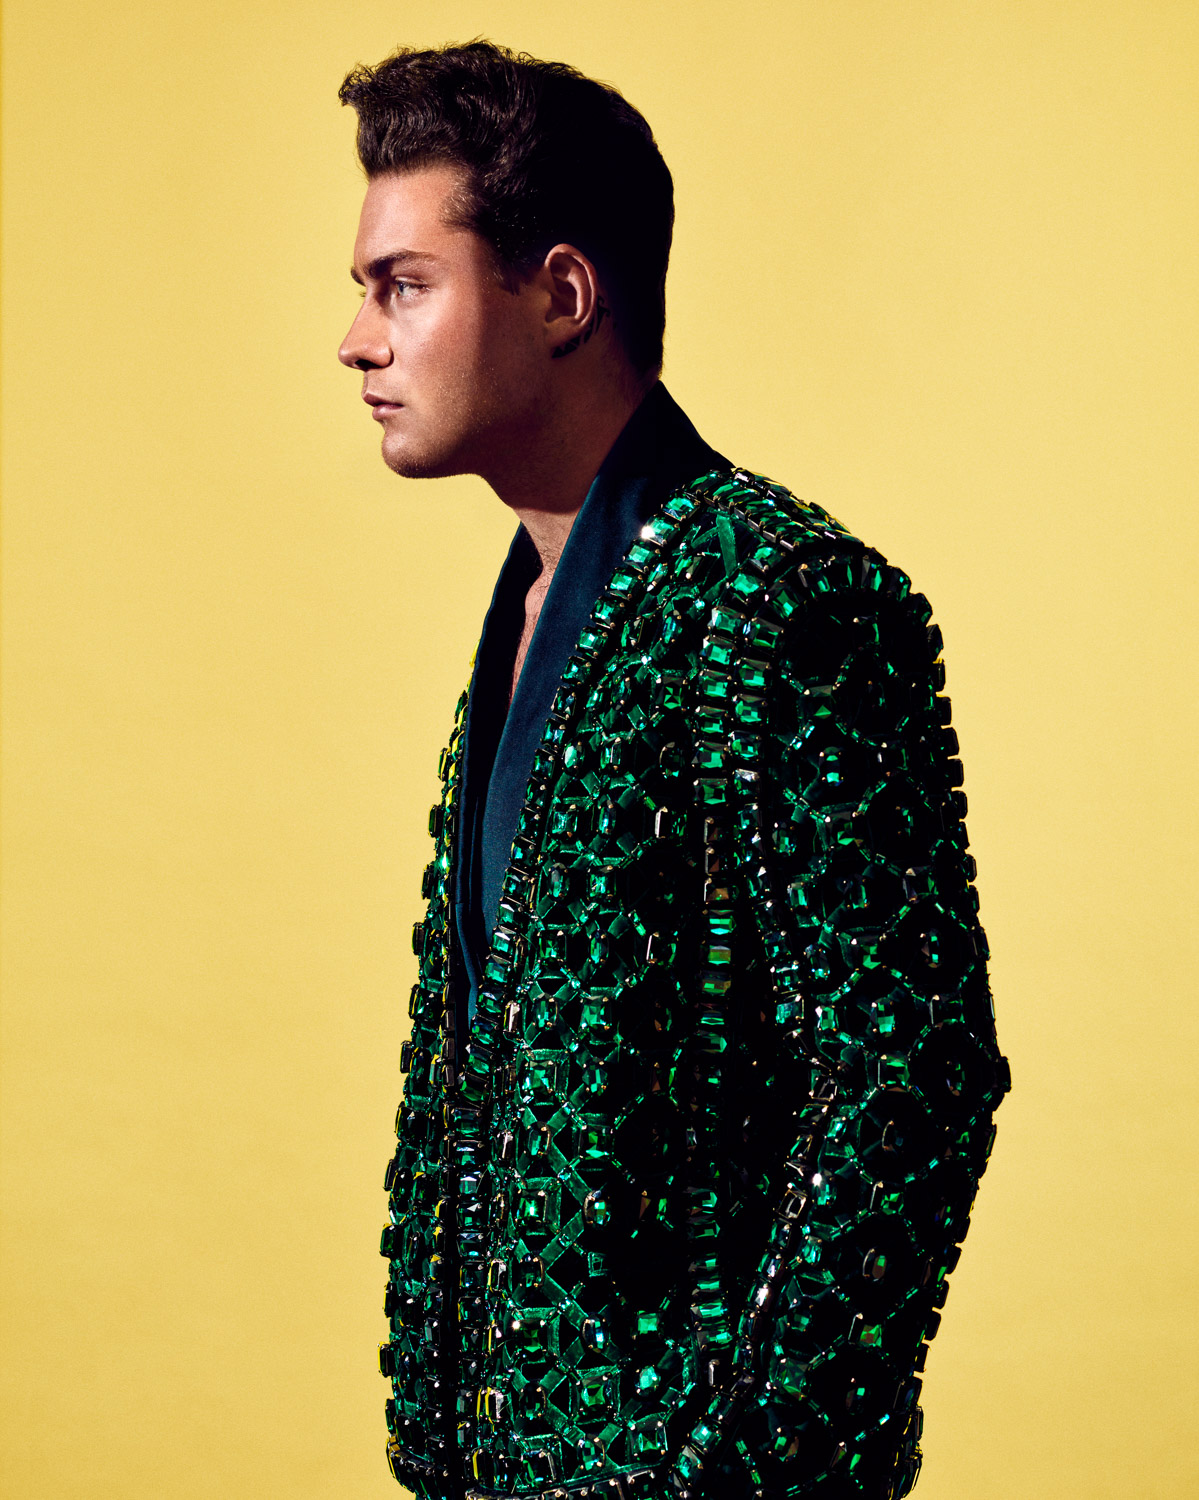 Douwe Bob for Vogue Man NL by Marc de Groot